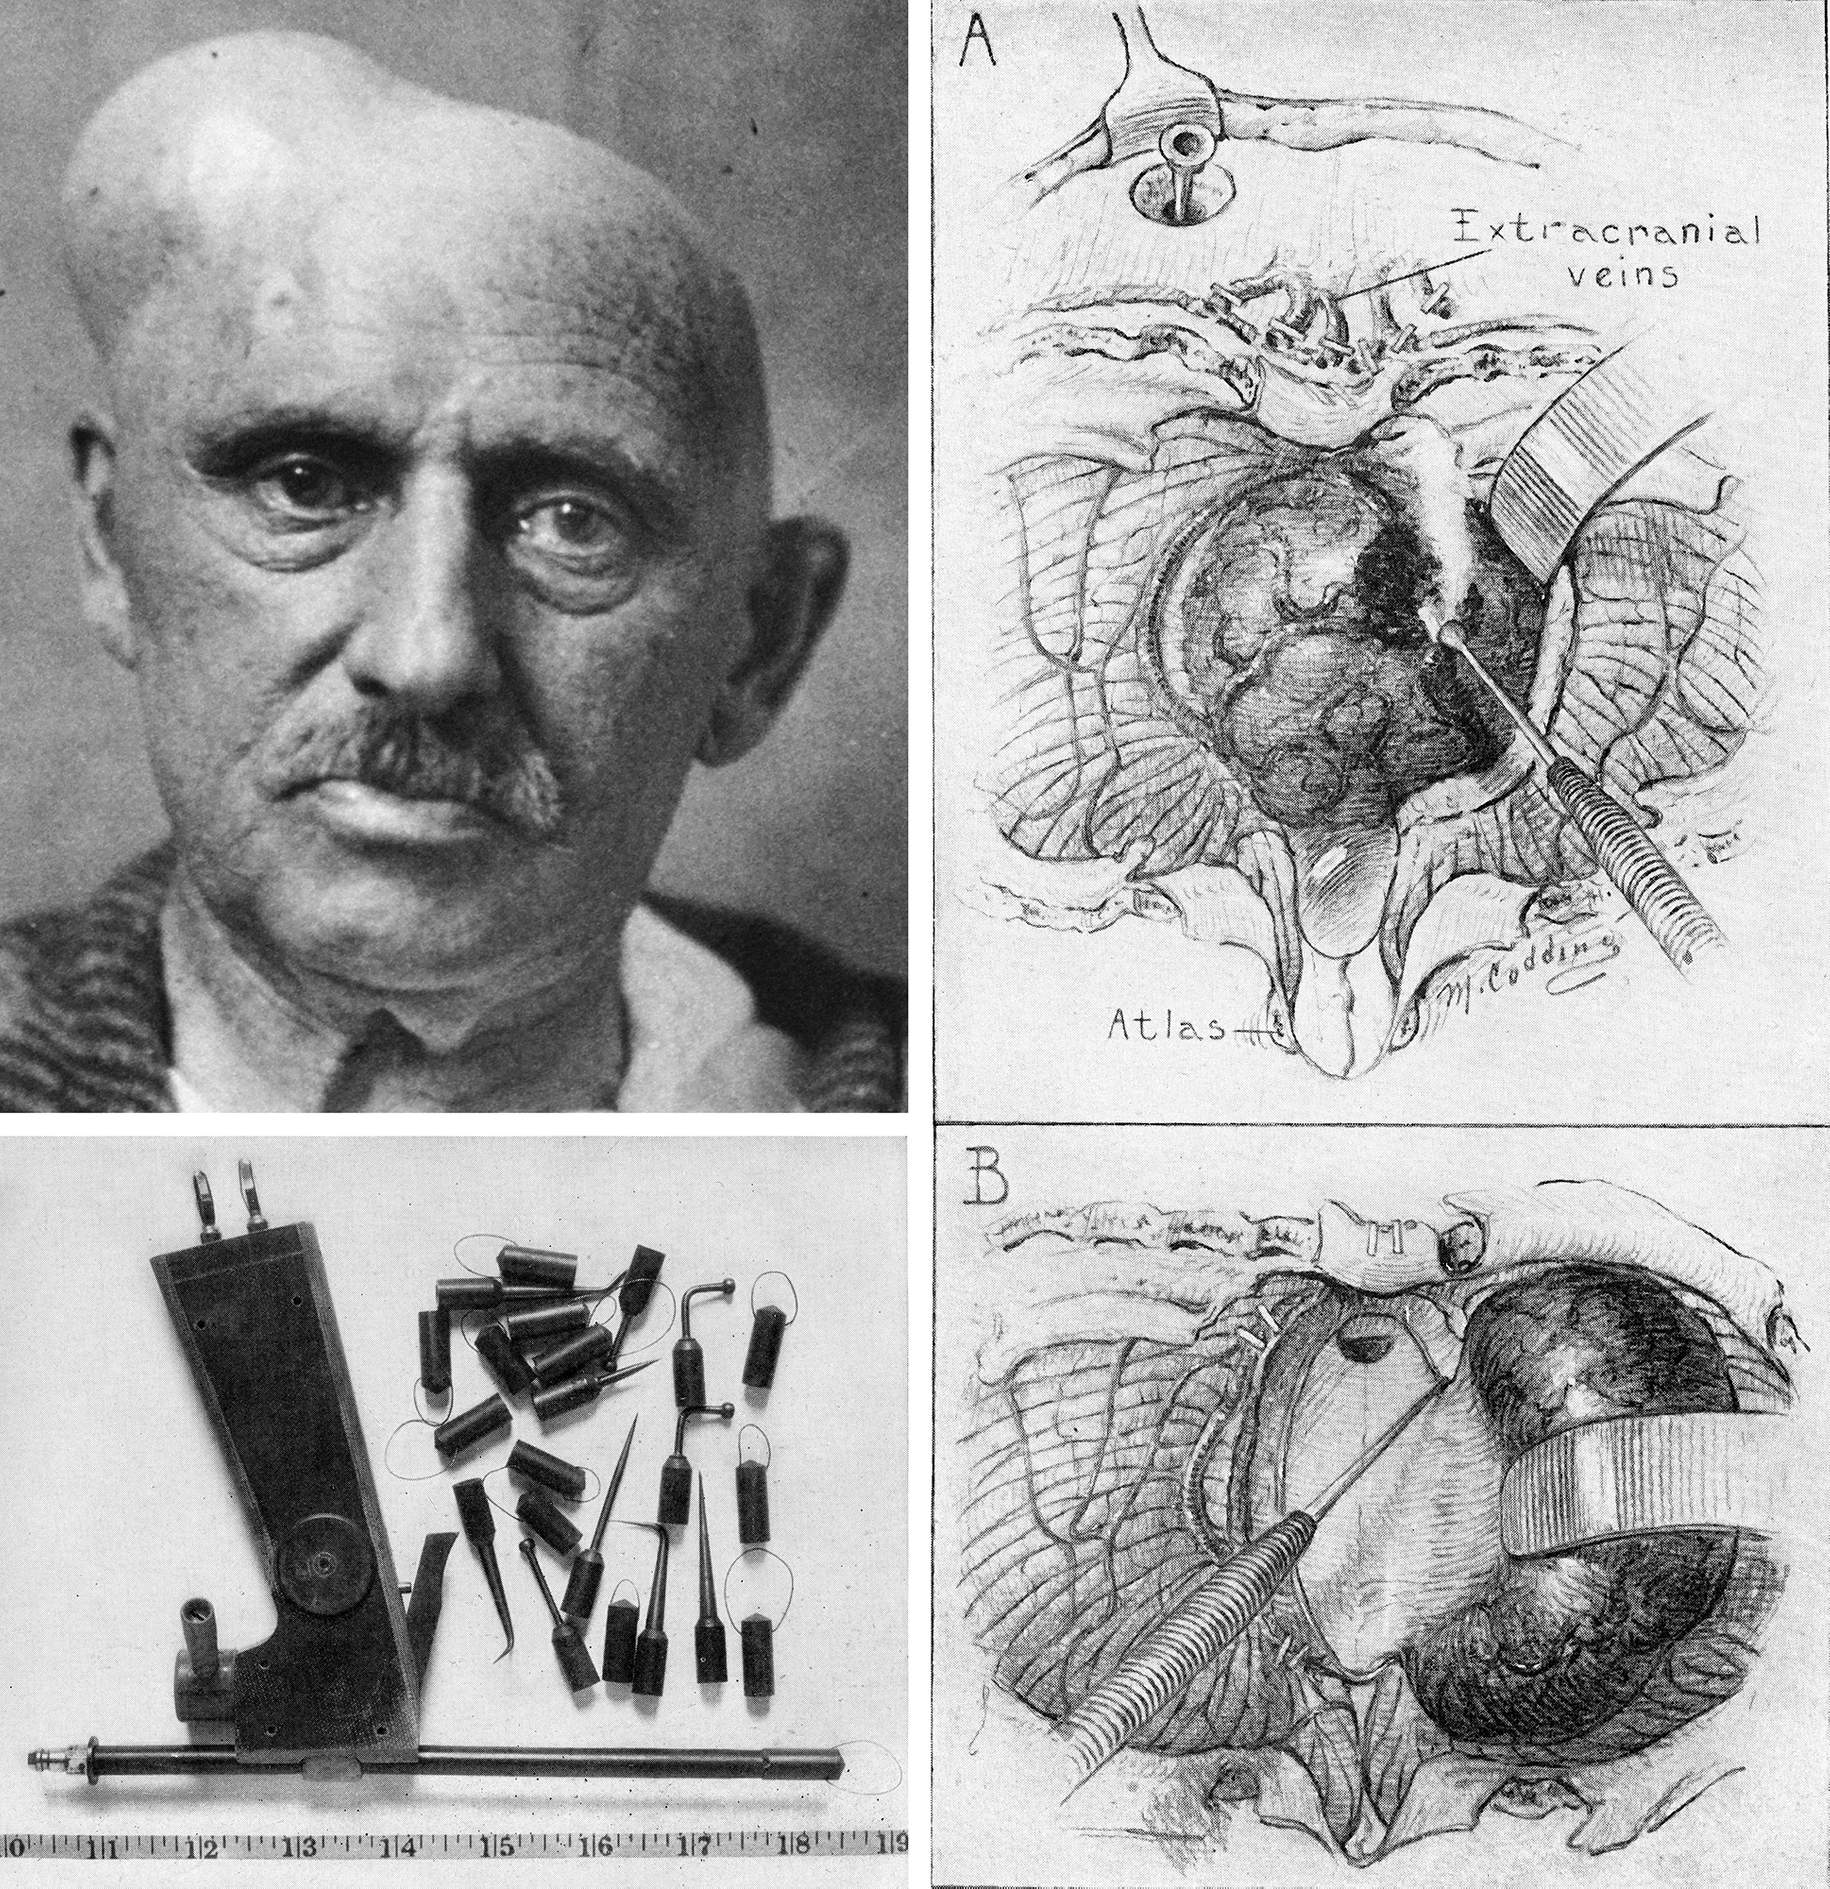 Figure 1: Harvey Cushing introduced Bovie's electrocautery to neurosurgery. This photograph shows the first of Cushing's patients who underwent resection of his tumor using this device (left upper image). Cushing demonstrated the use of this instrument (left lower image) for resection of a 4th ventricular tumor (right image)(Images courtesy of the Cushing Brain Tumor Registry at Yale University.)